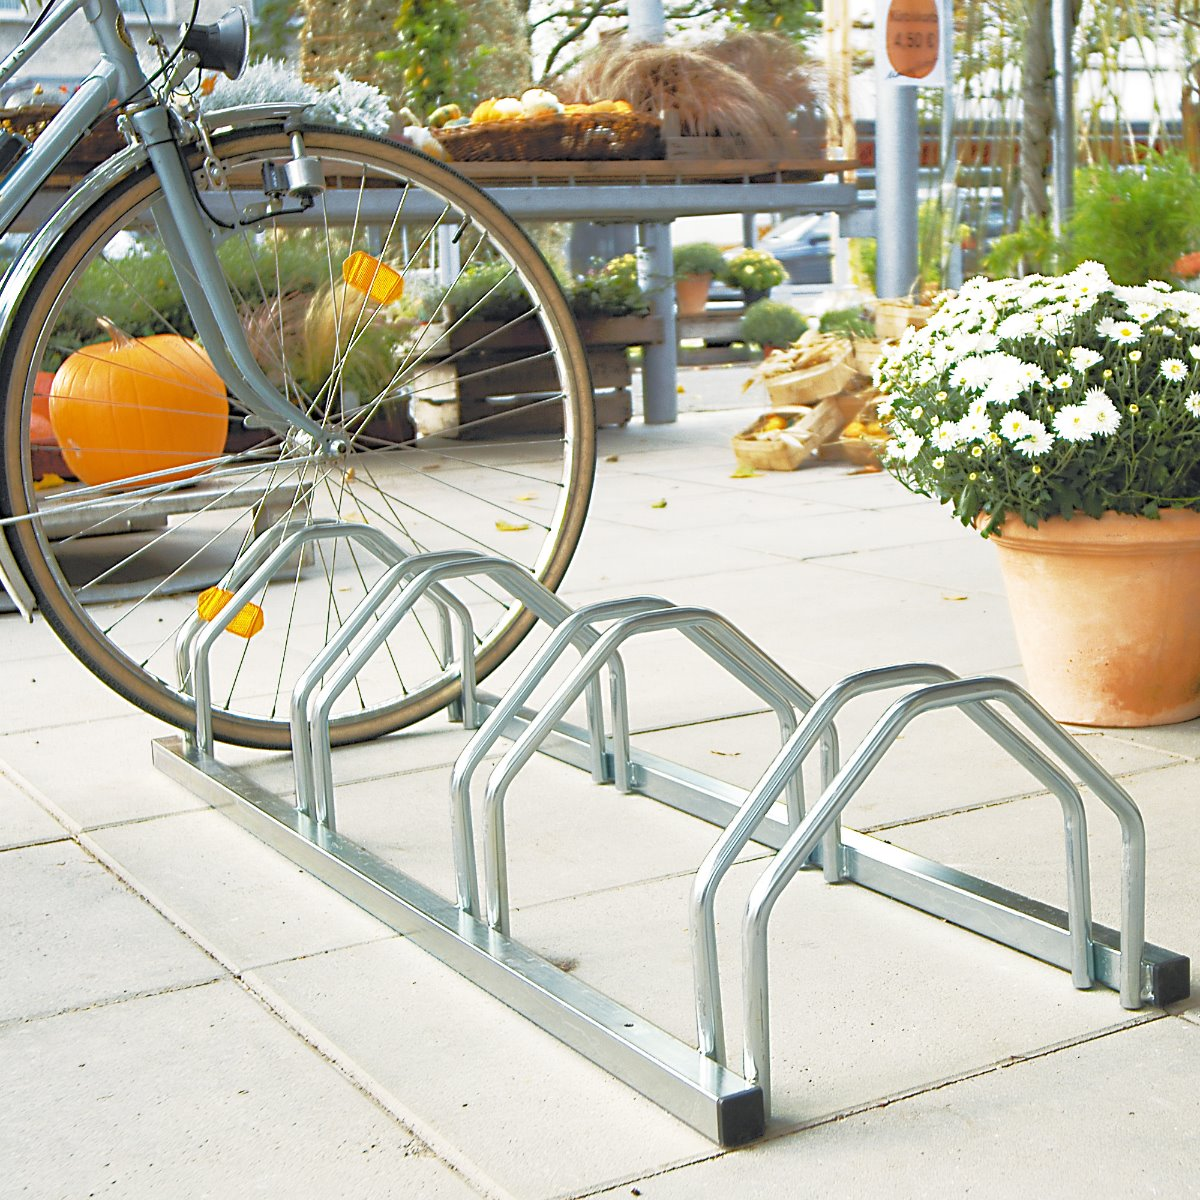 Economy Cycle Rack